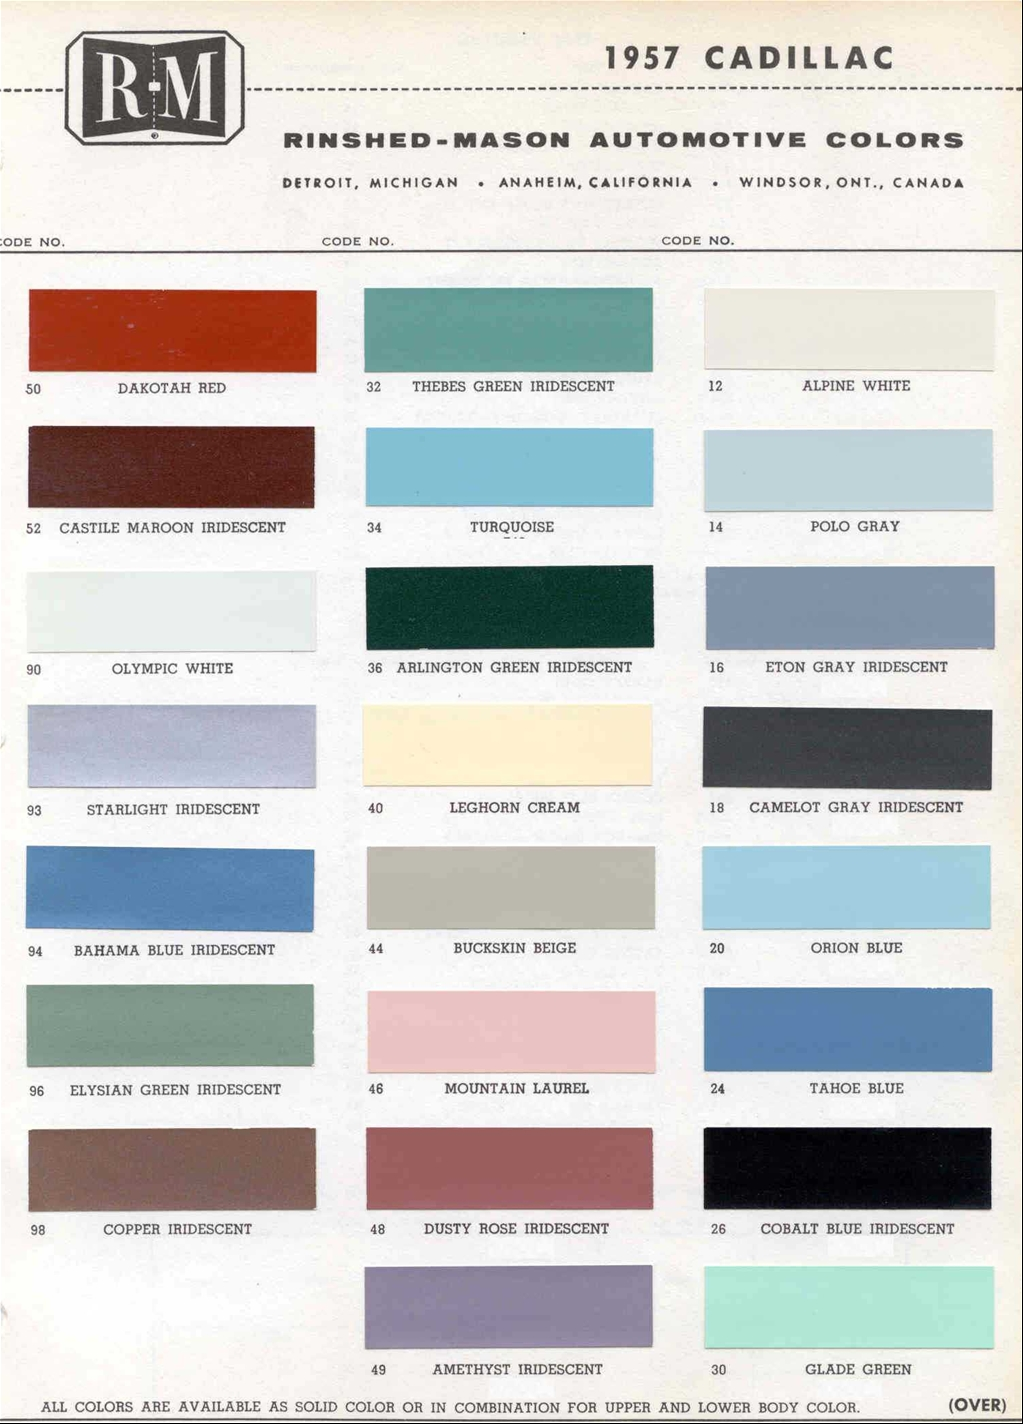 Official cadillac color names and paint codes archive cadillac official cadillac color names and paint codes archive cadillac forums cadillac owners forum nvjuhfo Images